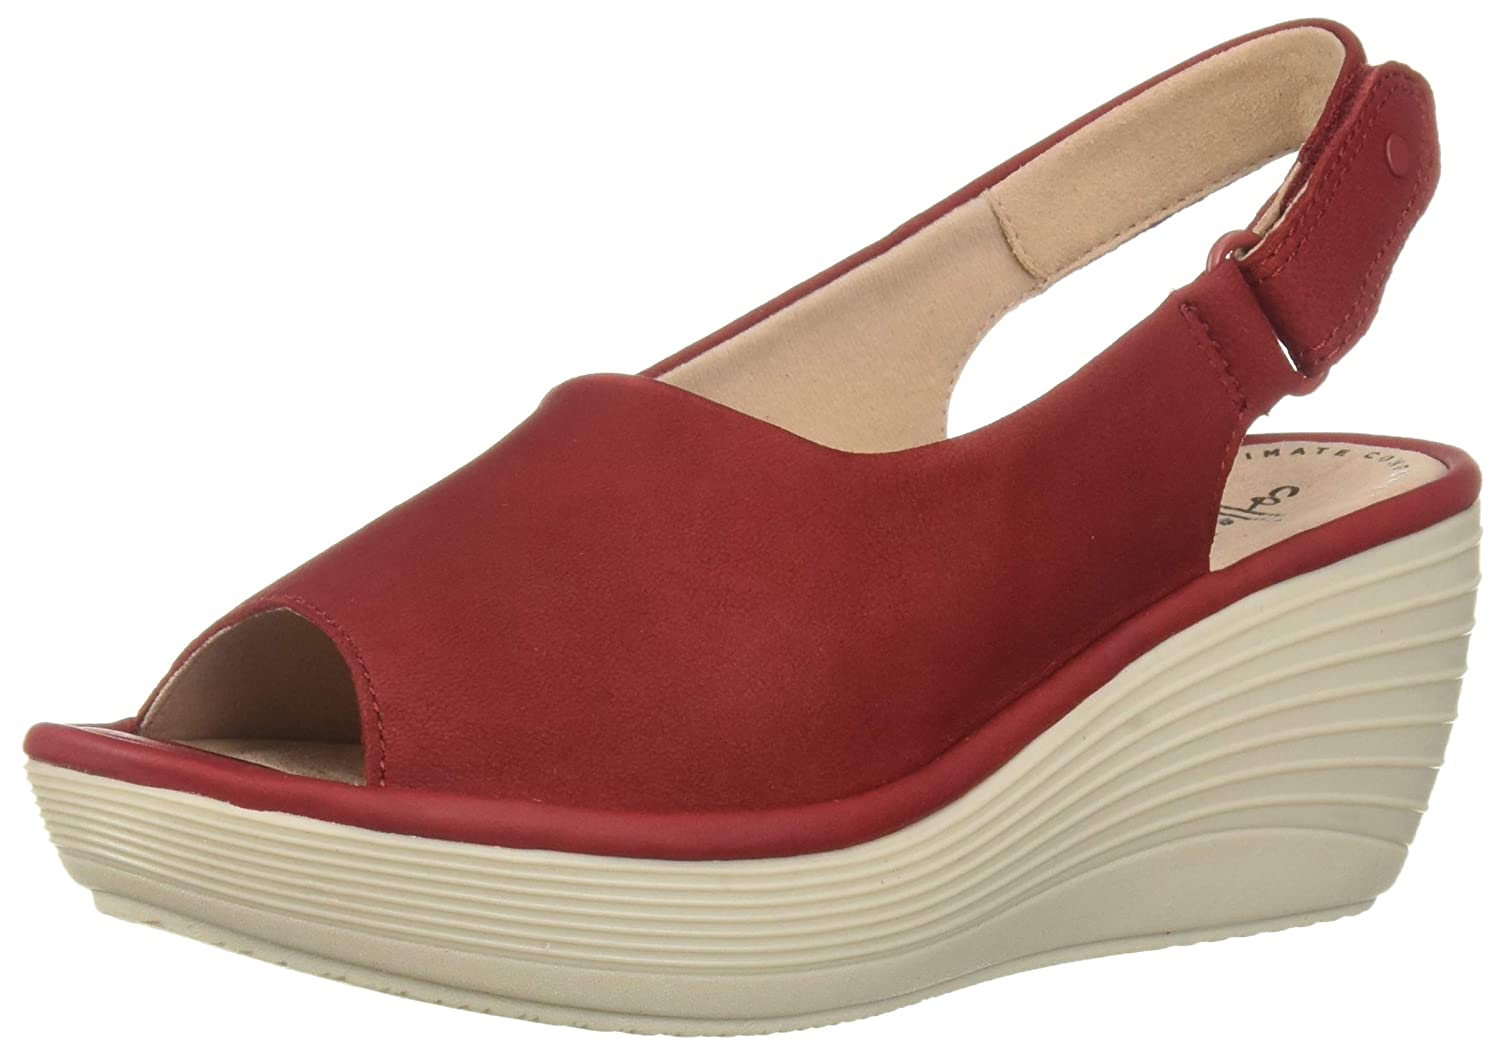 Red Nubuck Clarks Womens Reedly Shaina Wedge Sandal